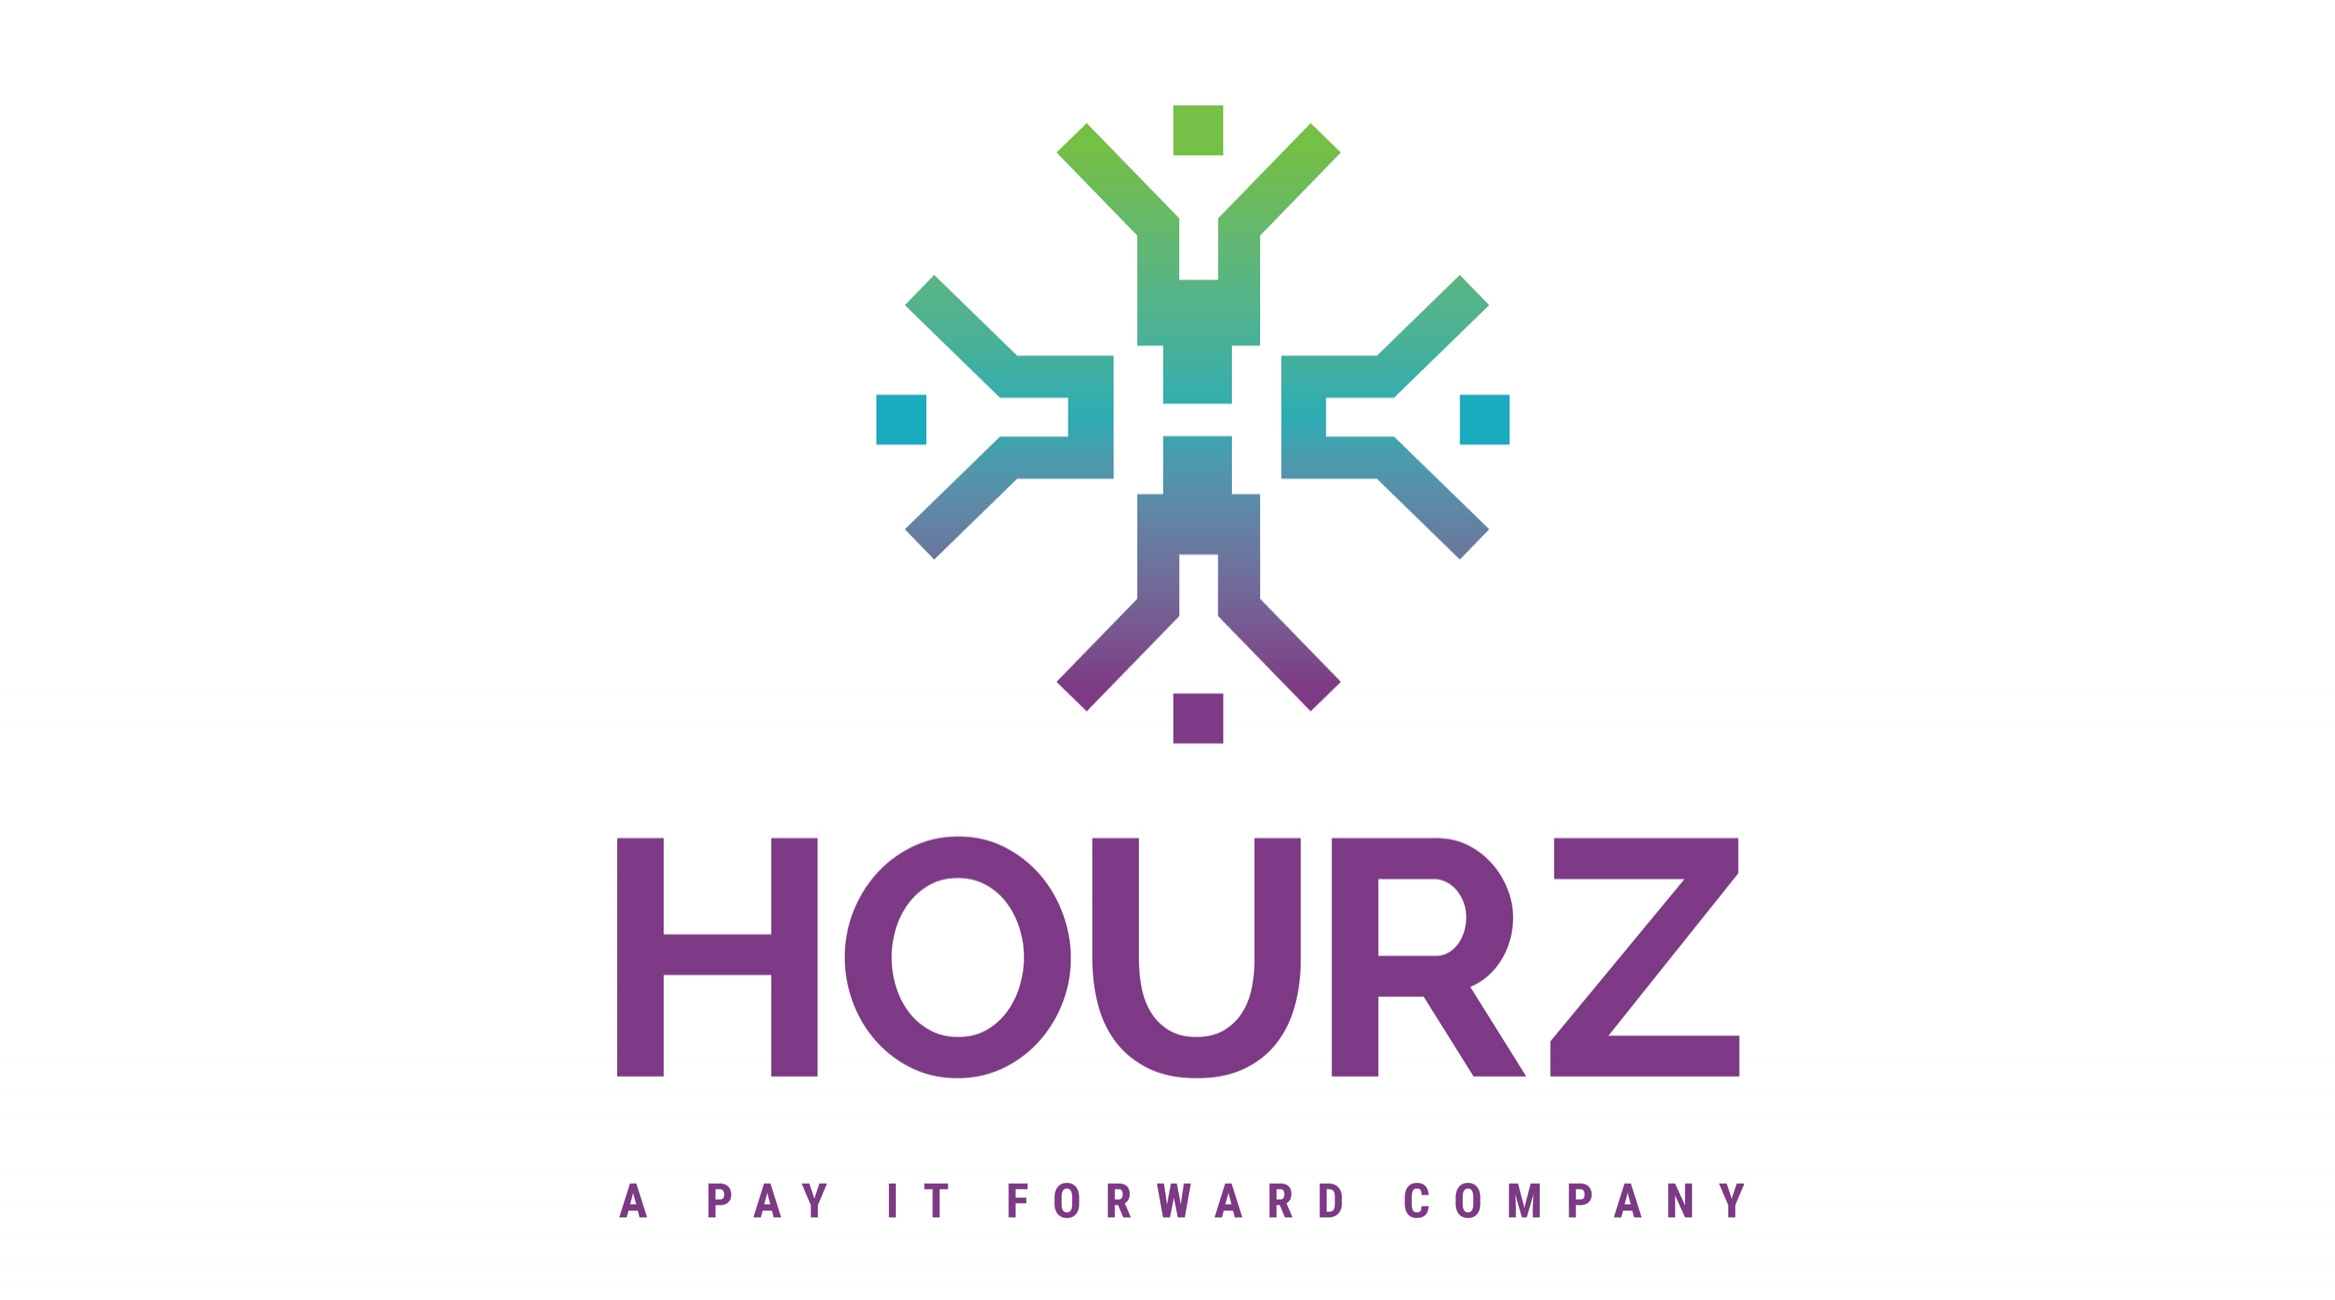 Pay It Forward - Every job you work through HOURZ supports job training and work opportunities for at-risk young people. Learn More.